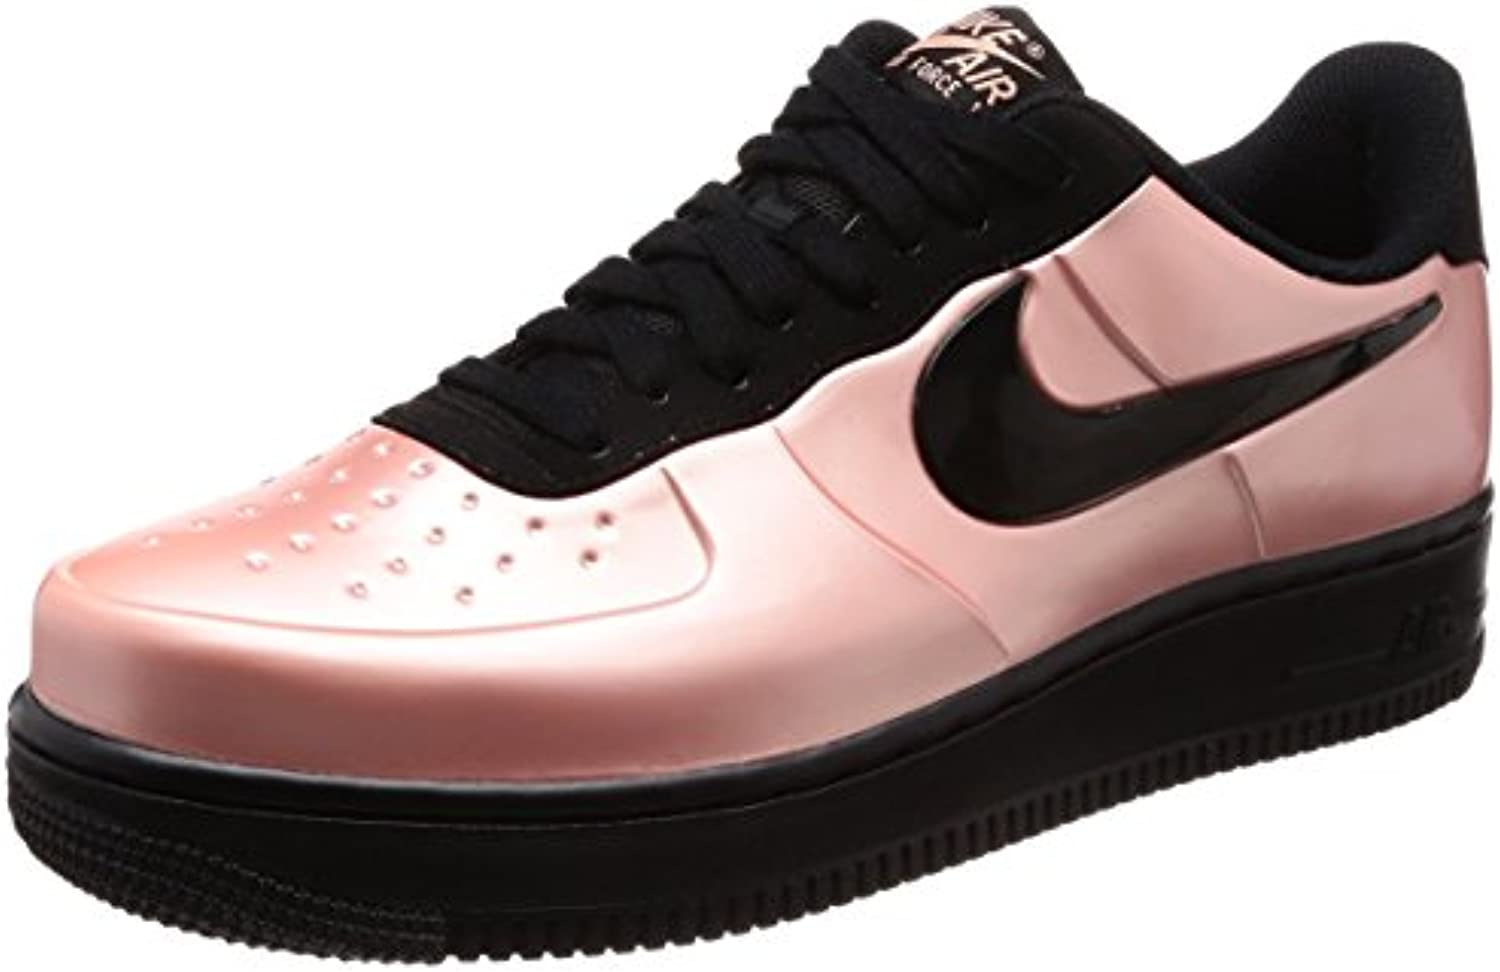 nike air force 1 foamposite hommes pro - cupsole parent chaussure coral stardust b07bh59lfb parent cupsole 5c1053